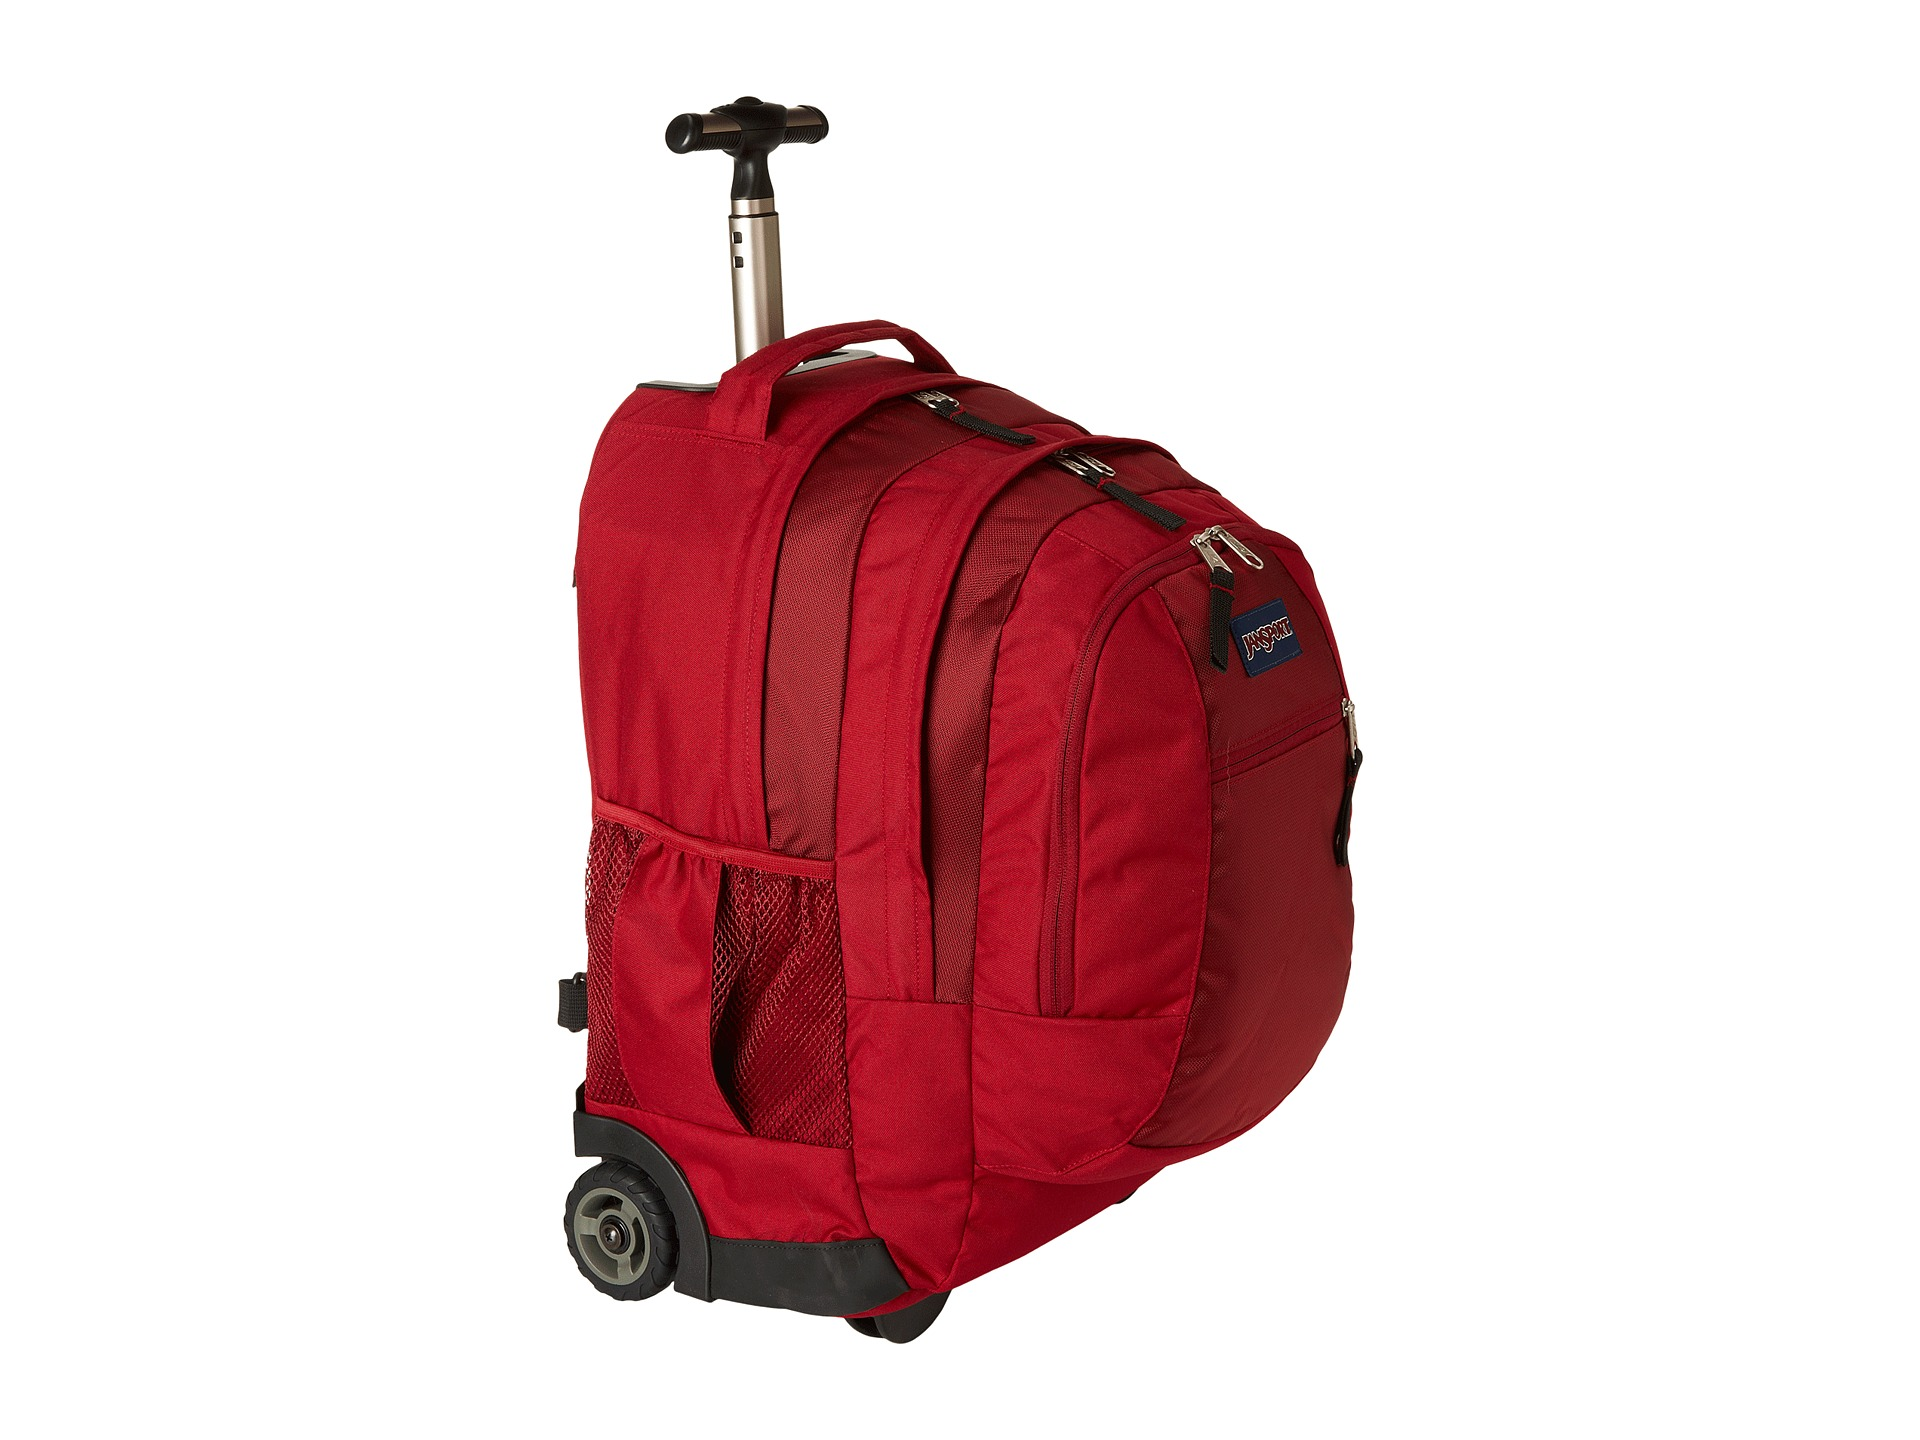 JanSport Driver 8 Wheeled - Zappos.com Free Shipping BOTH Ways 209aee23e4d73